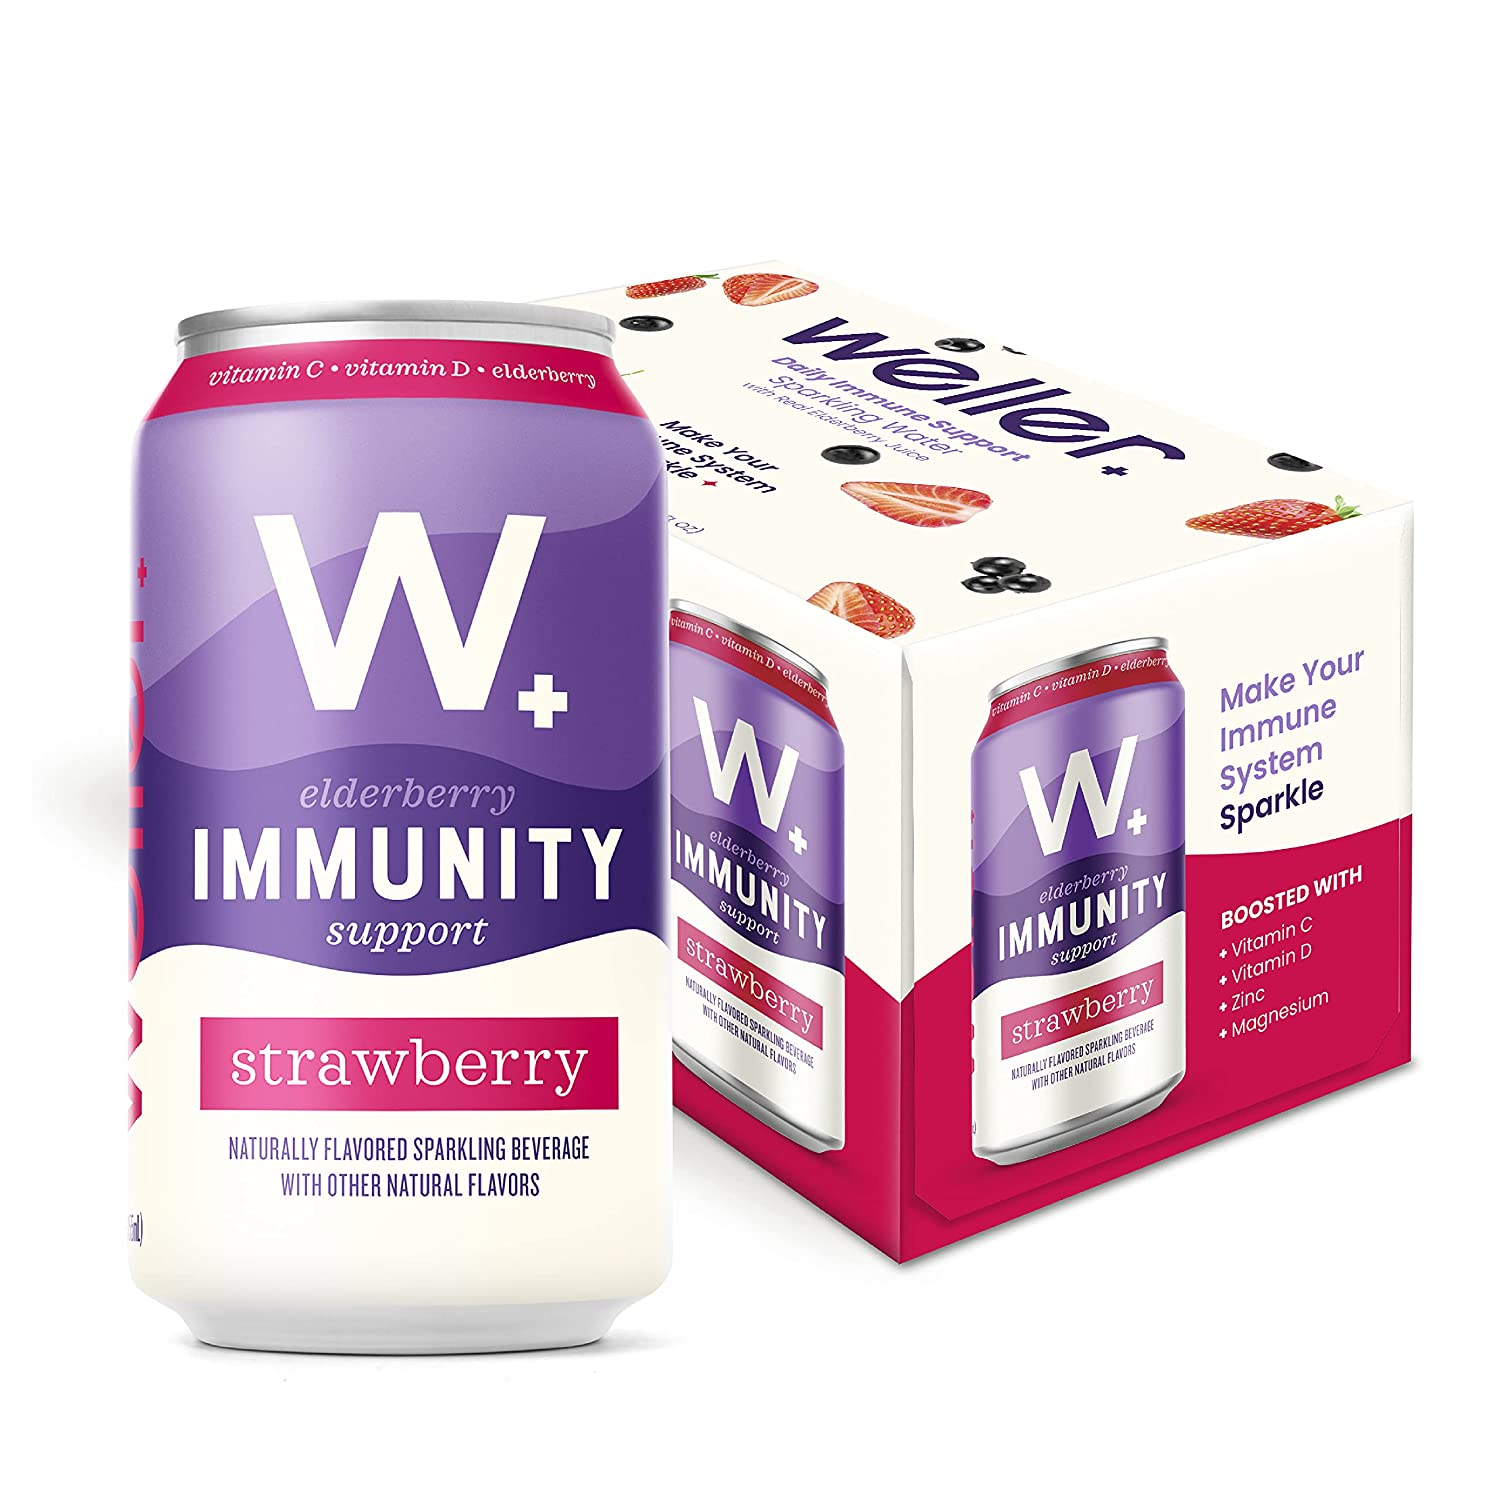 Weller Elderberry Immunity Support Sparkling Water, Strawberry Flavored Water, Low Sugar, Low Calorie, All Natural Drinks (6 pack, 12oz cans)